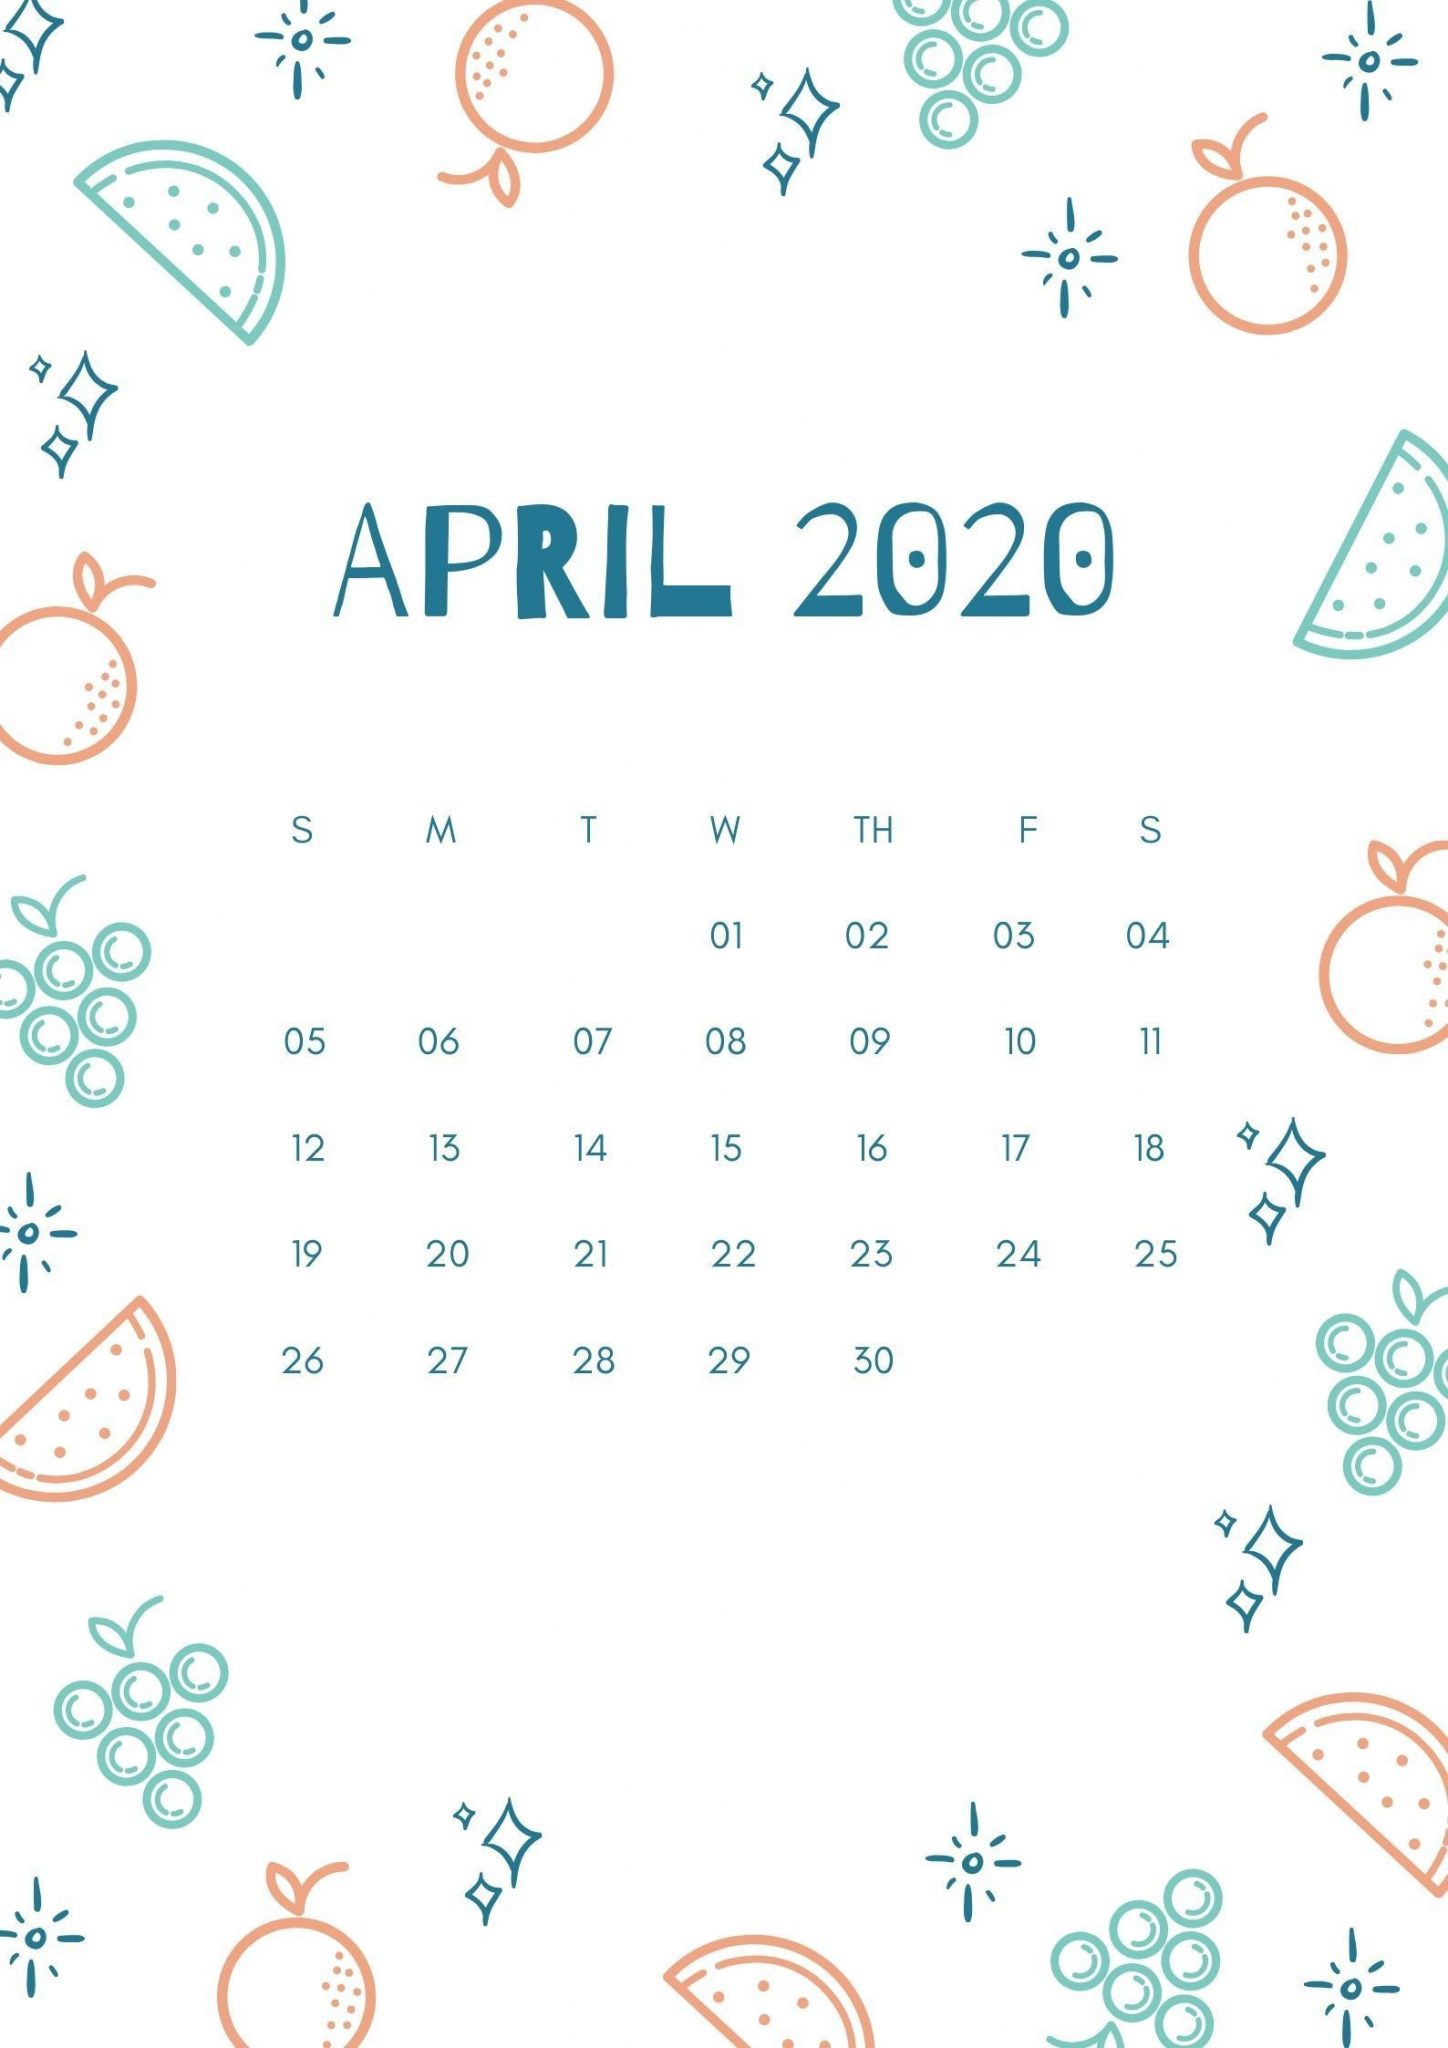 Cute April 2020 iPhone Calendar